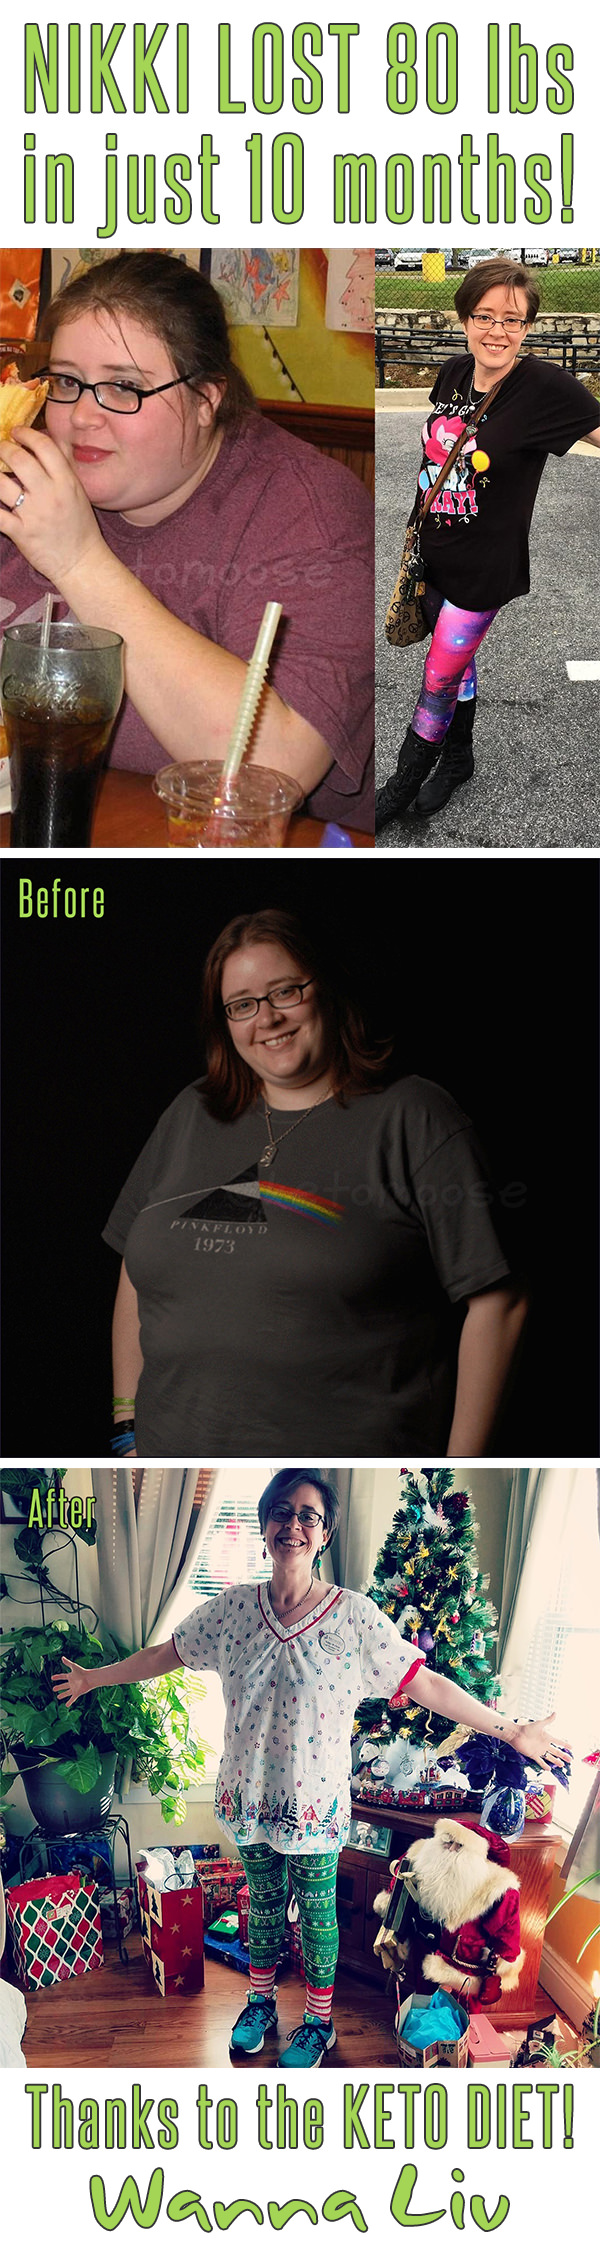 NIKKI LOST 80 lbs in just 10 months! Thanks to the KETO DIET! - Keto Success Stories #12 via Wanna Liv